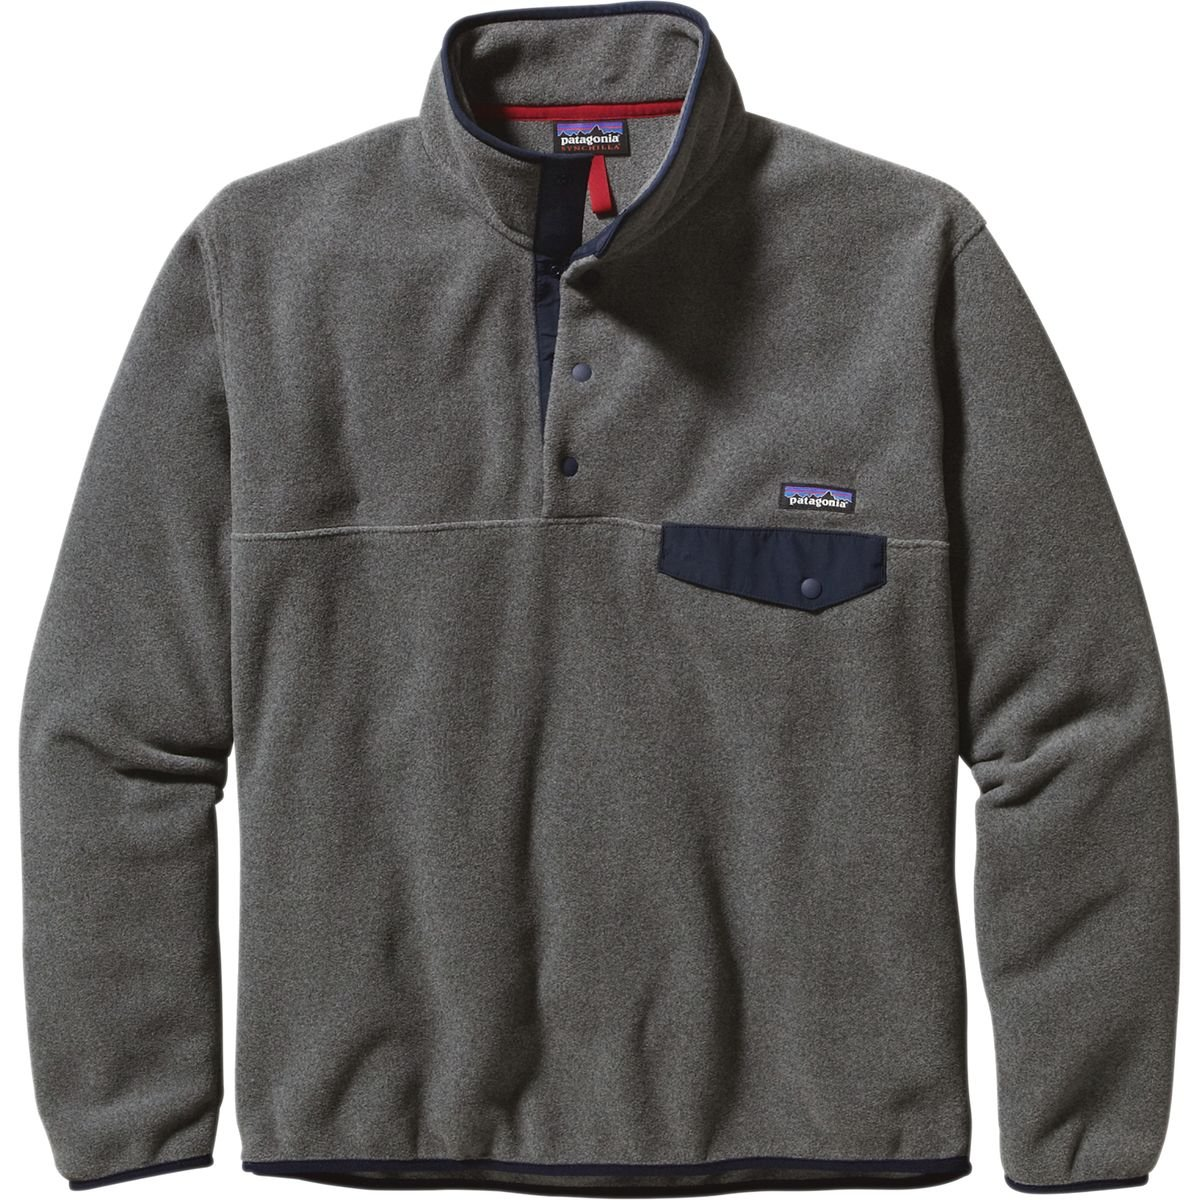 (パタゴニア)patagonia フリース Ms LW シンチラスナップT P/O 25580 [メンズ] B00OZGY8OO XX-Large|Nickel/Navy Blue Nickel/Navy Blue XX-Large